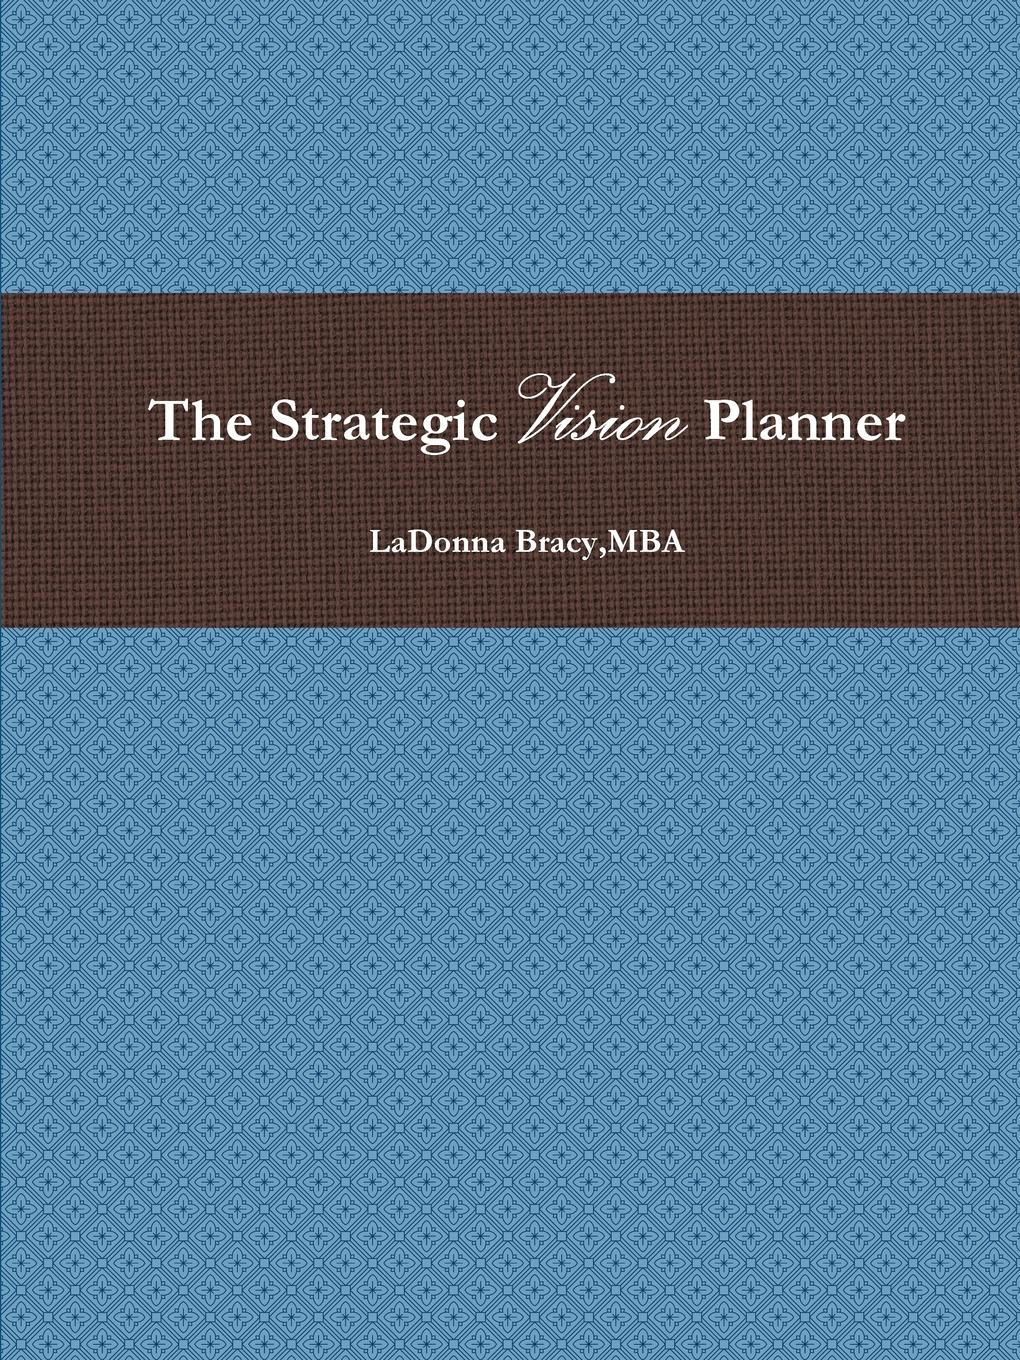 MBA LaDonna Bracy The Strategic Vision Planner suzanne morse w smart communities how citizens and local leaders can use strategic thinking to build a brighter future